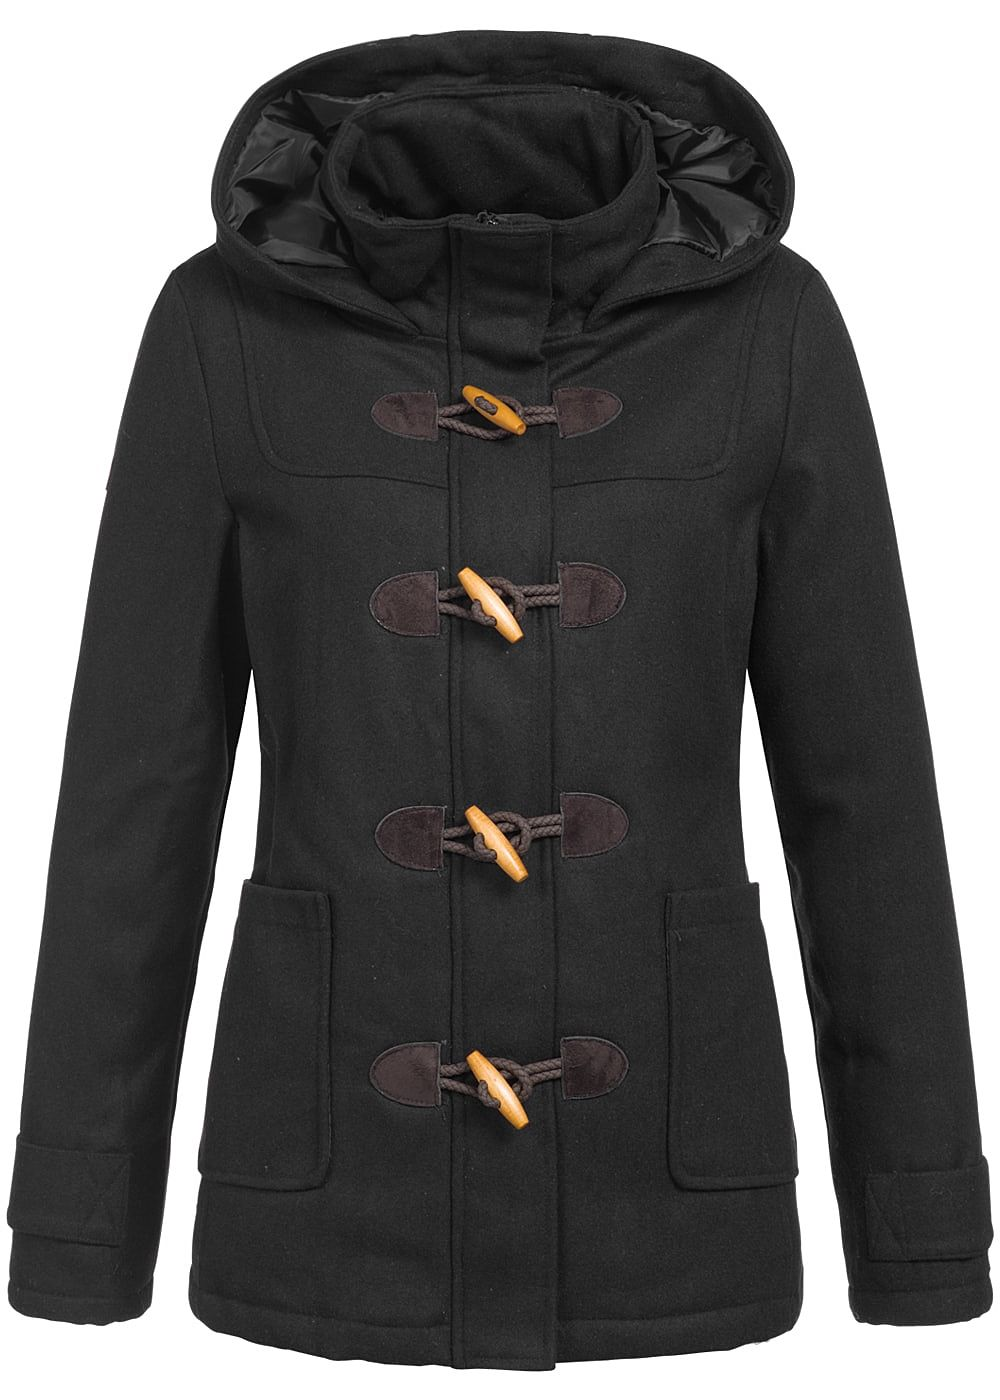 seventyseven lifestyle damen winter parka kapuze 2 taschen rv knebelverschluss schwarz. Black Bedroom Furniture Sets. Home Design Ideas